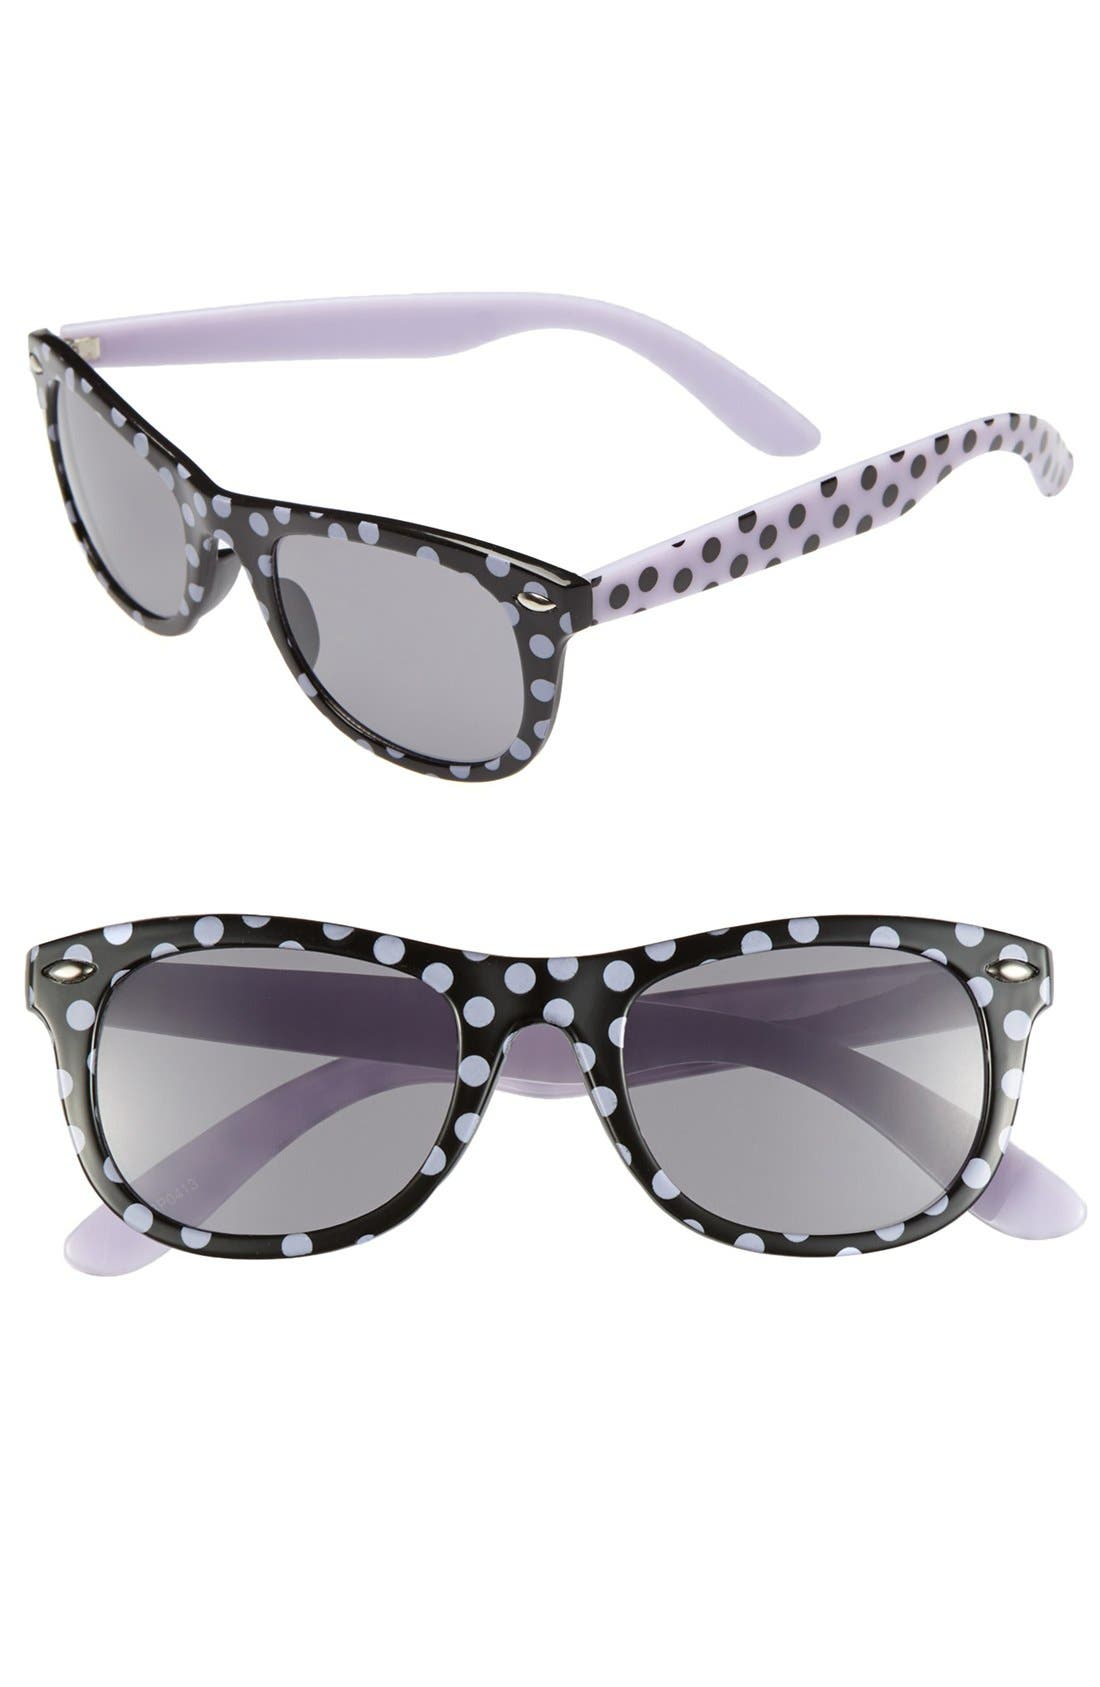 Alternate Image 1 Selected - Fantas Eyes Print Sunglasses (Girls)